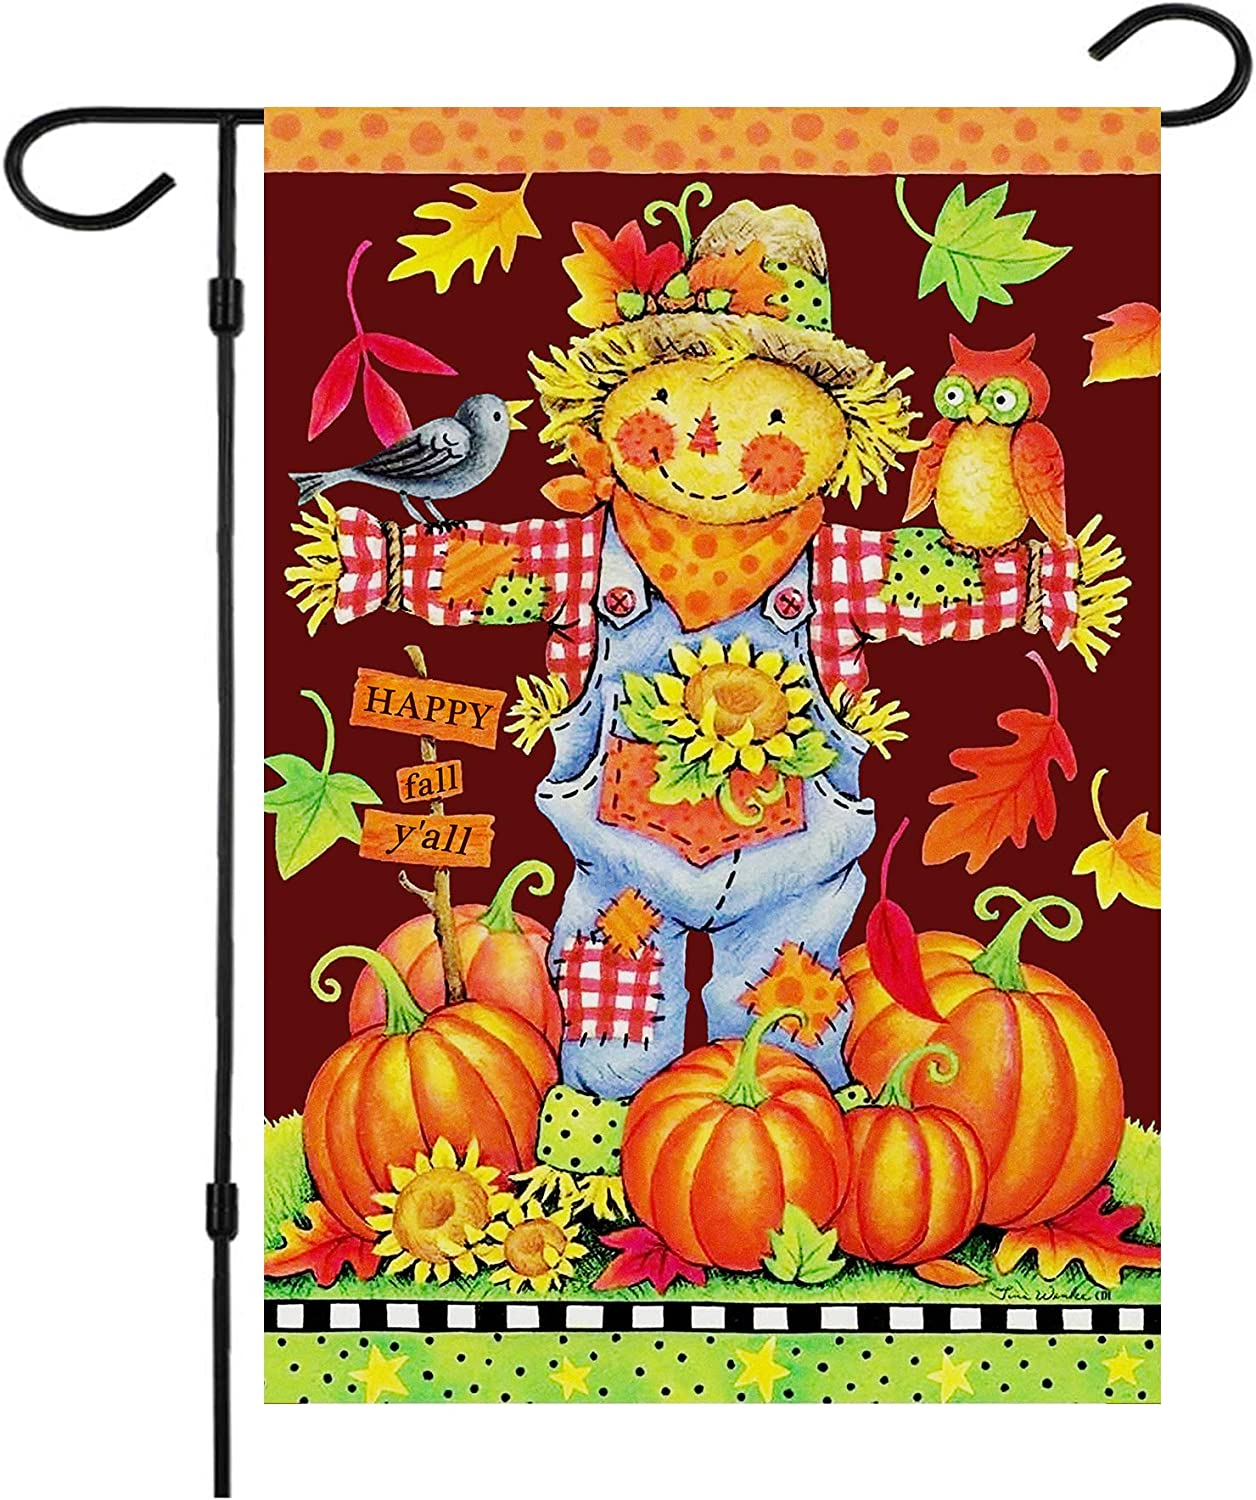 Happy Fall Garden Flags,Double Sided Autumn Flag Scarecrow Harvest Pumpkin Yard Decorations Fall House Flags 12 x 18 Inch Small Fall Yall Garden Flags